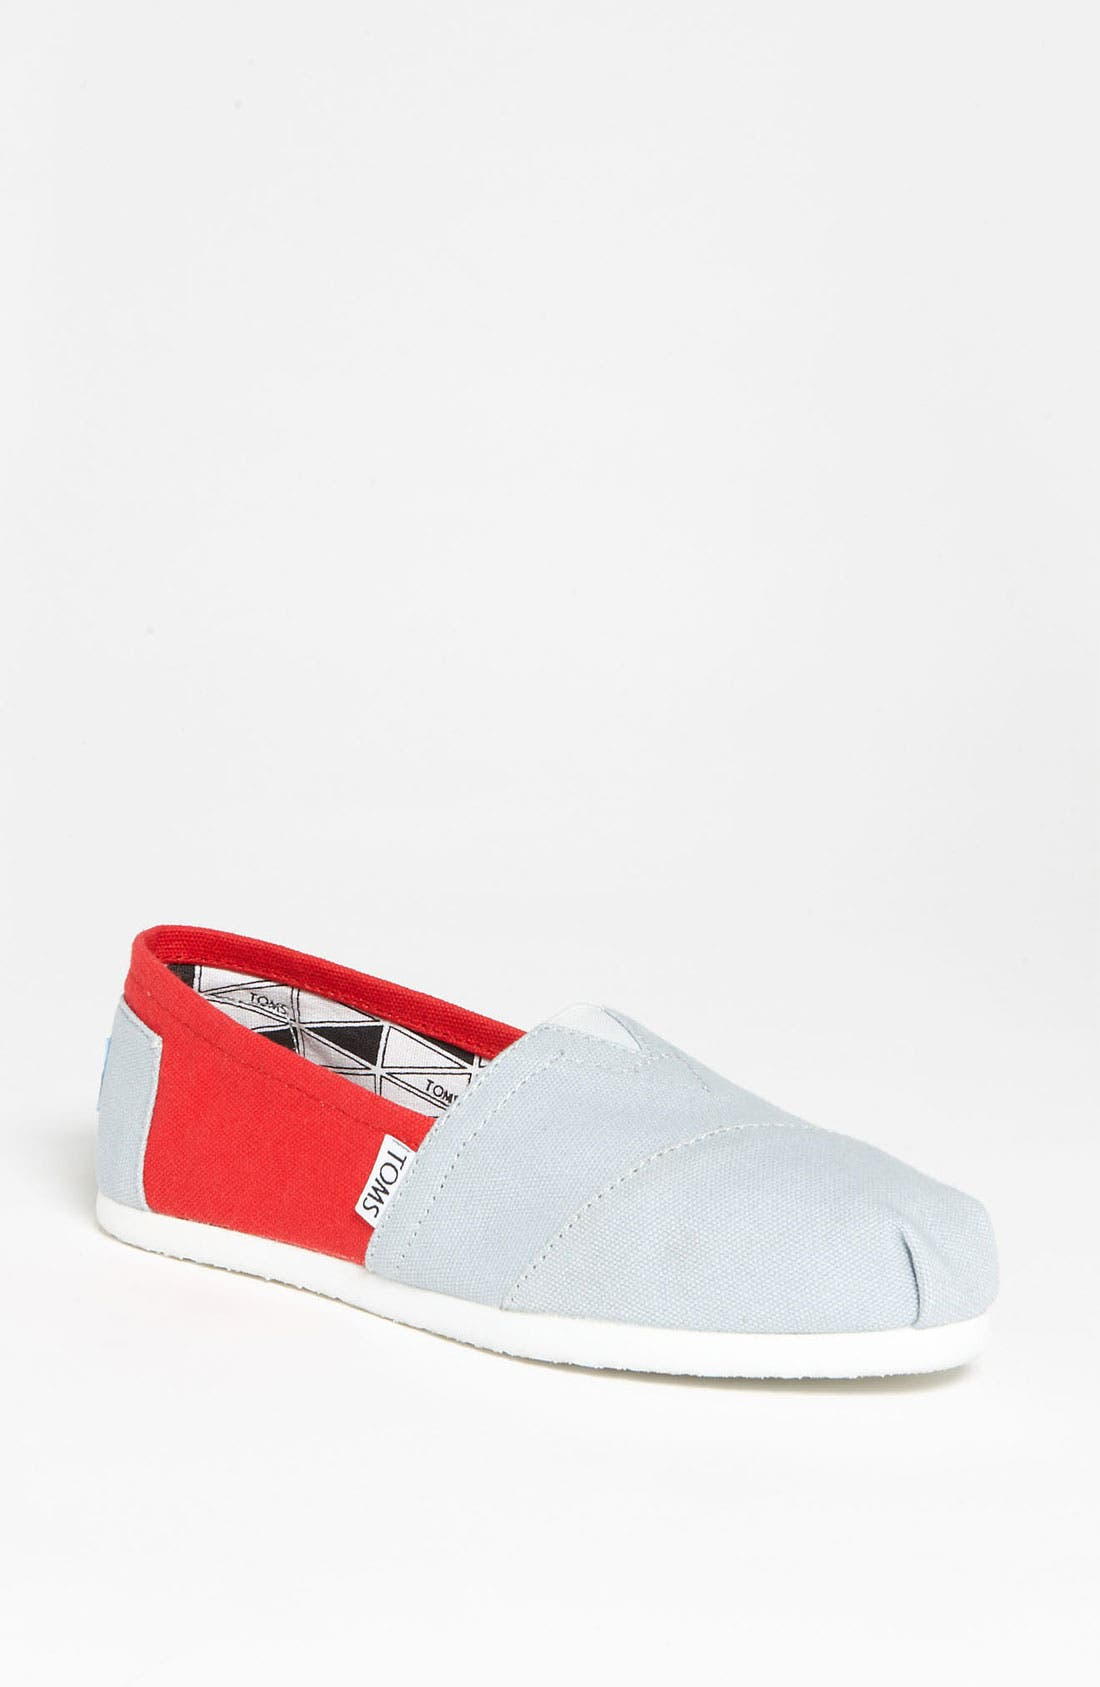 Alternate Image 1 Selected - TOMS 'Campus Classics - Ohio State' Slip-On (Women)